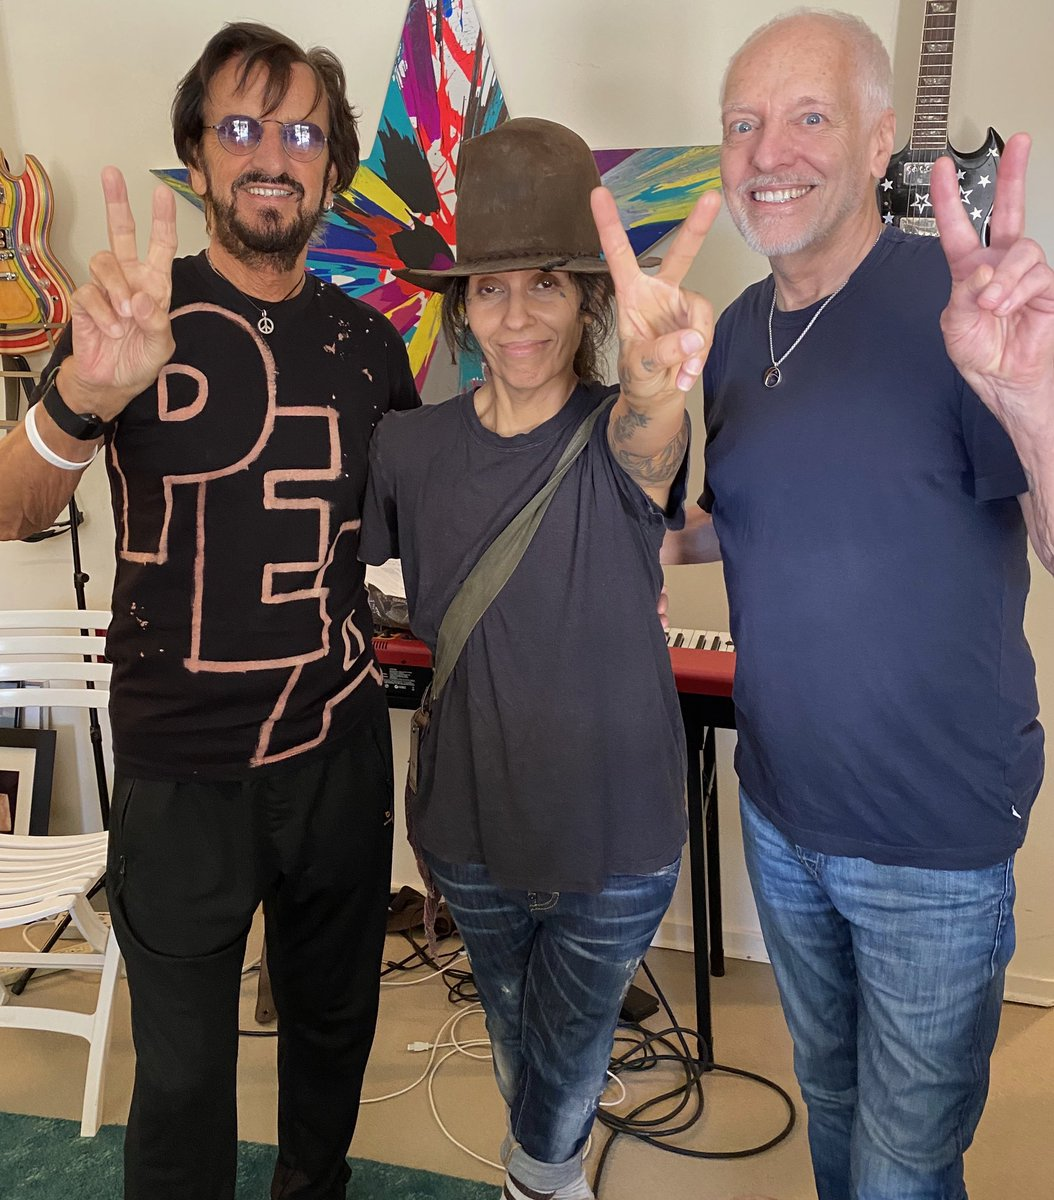 """Peter Frampton on Twitter: """"So great to be able to fly and see friends  again. Lovely afternoon listening to Ringo's great upcoming ep. Bonus: Linda  Perry came by. Always great to see #"""